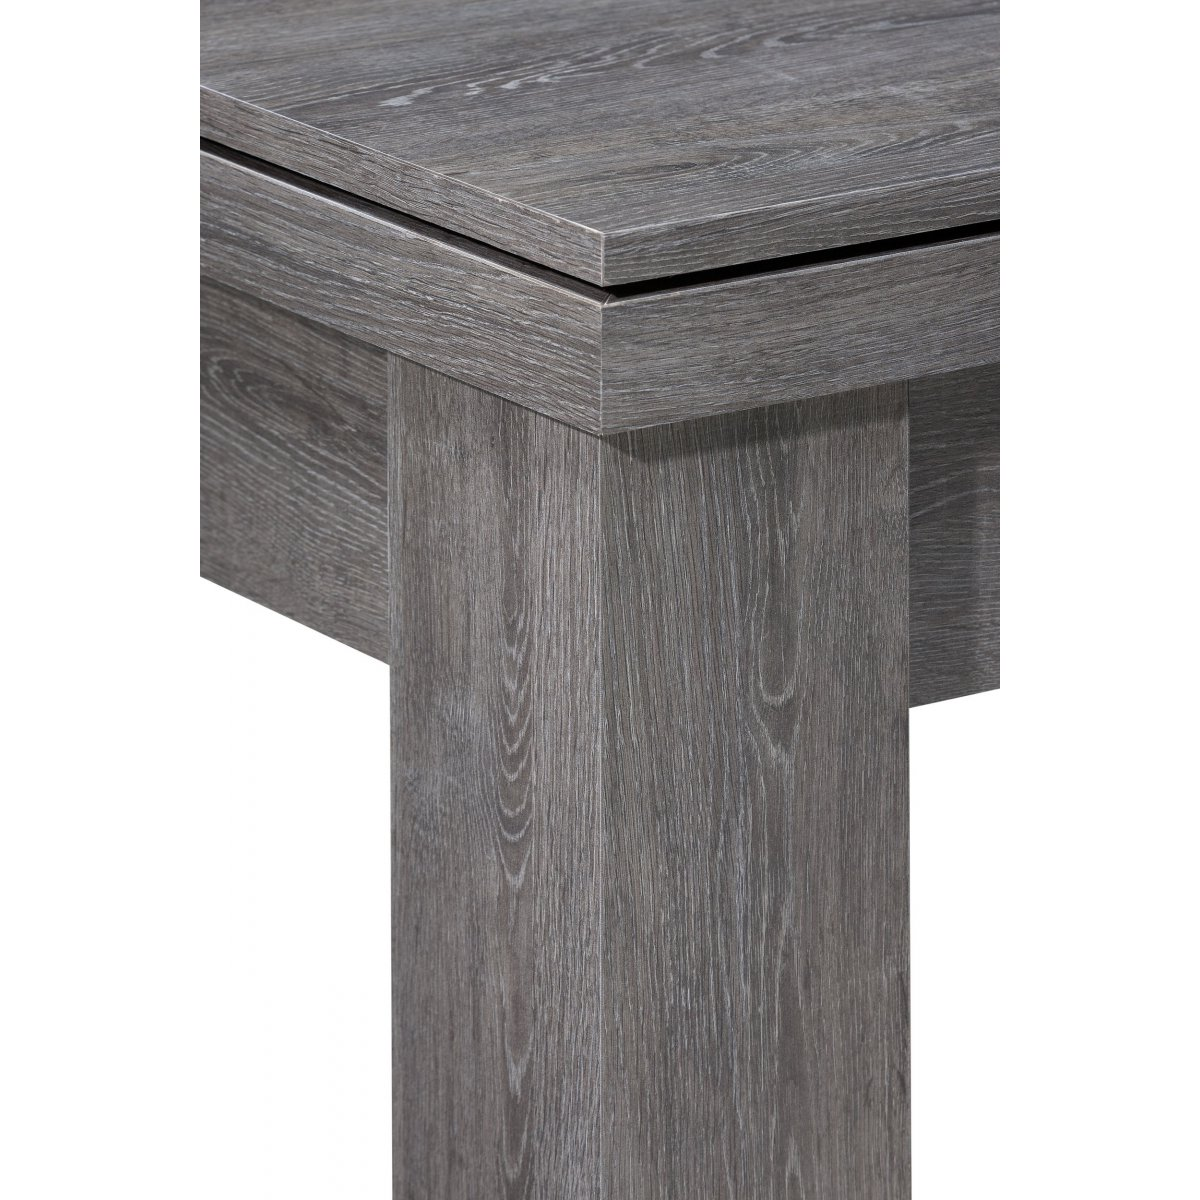 Table billard transformable et dessus de table en bois gris for Table billard convertible belgique